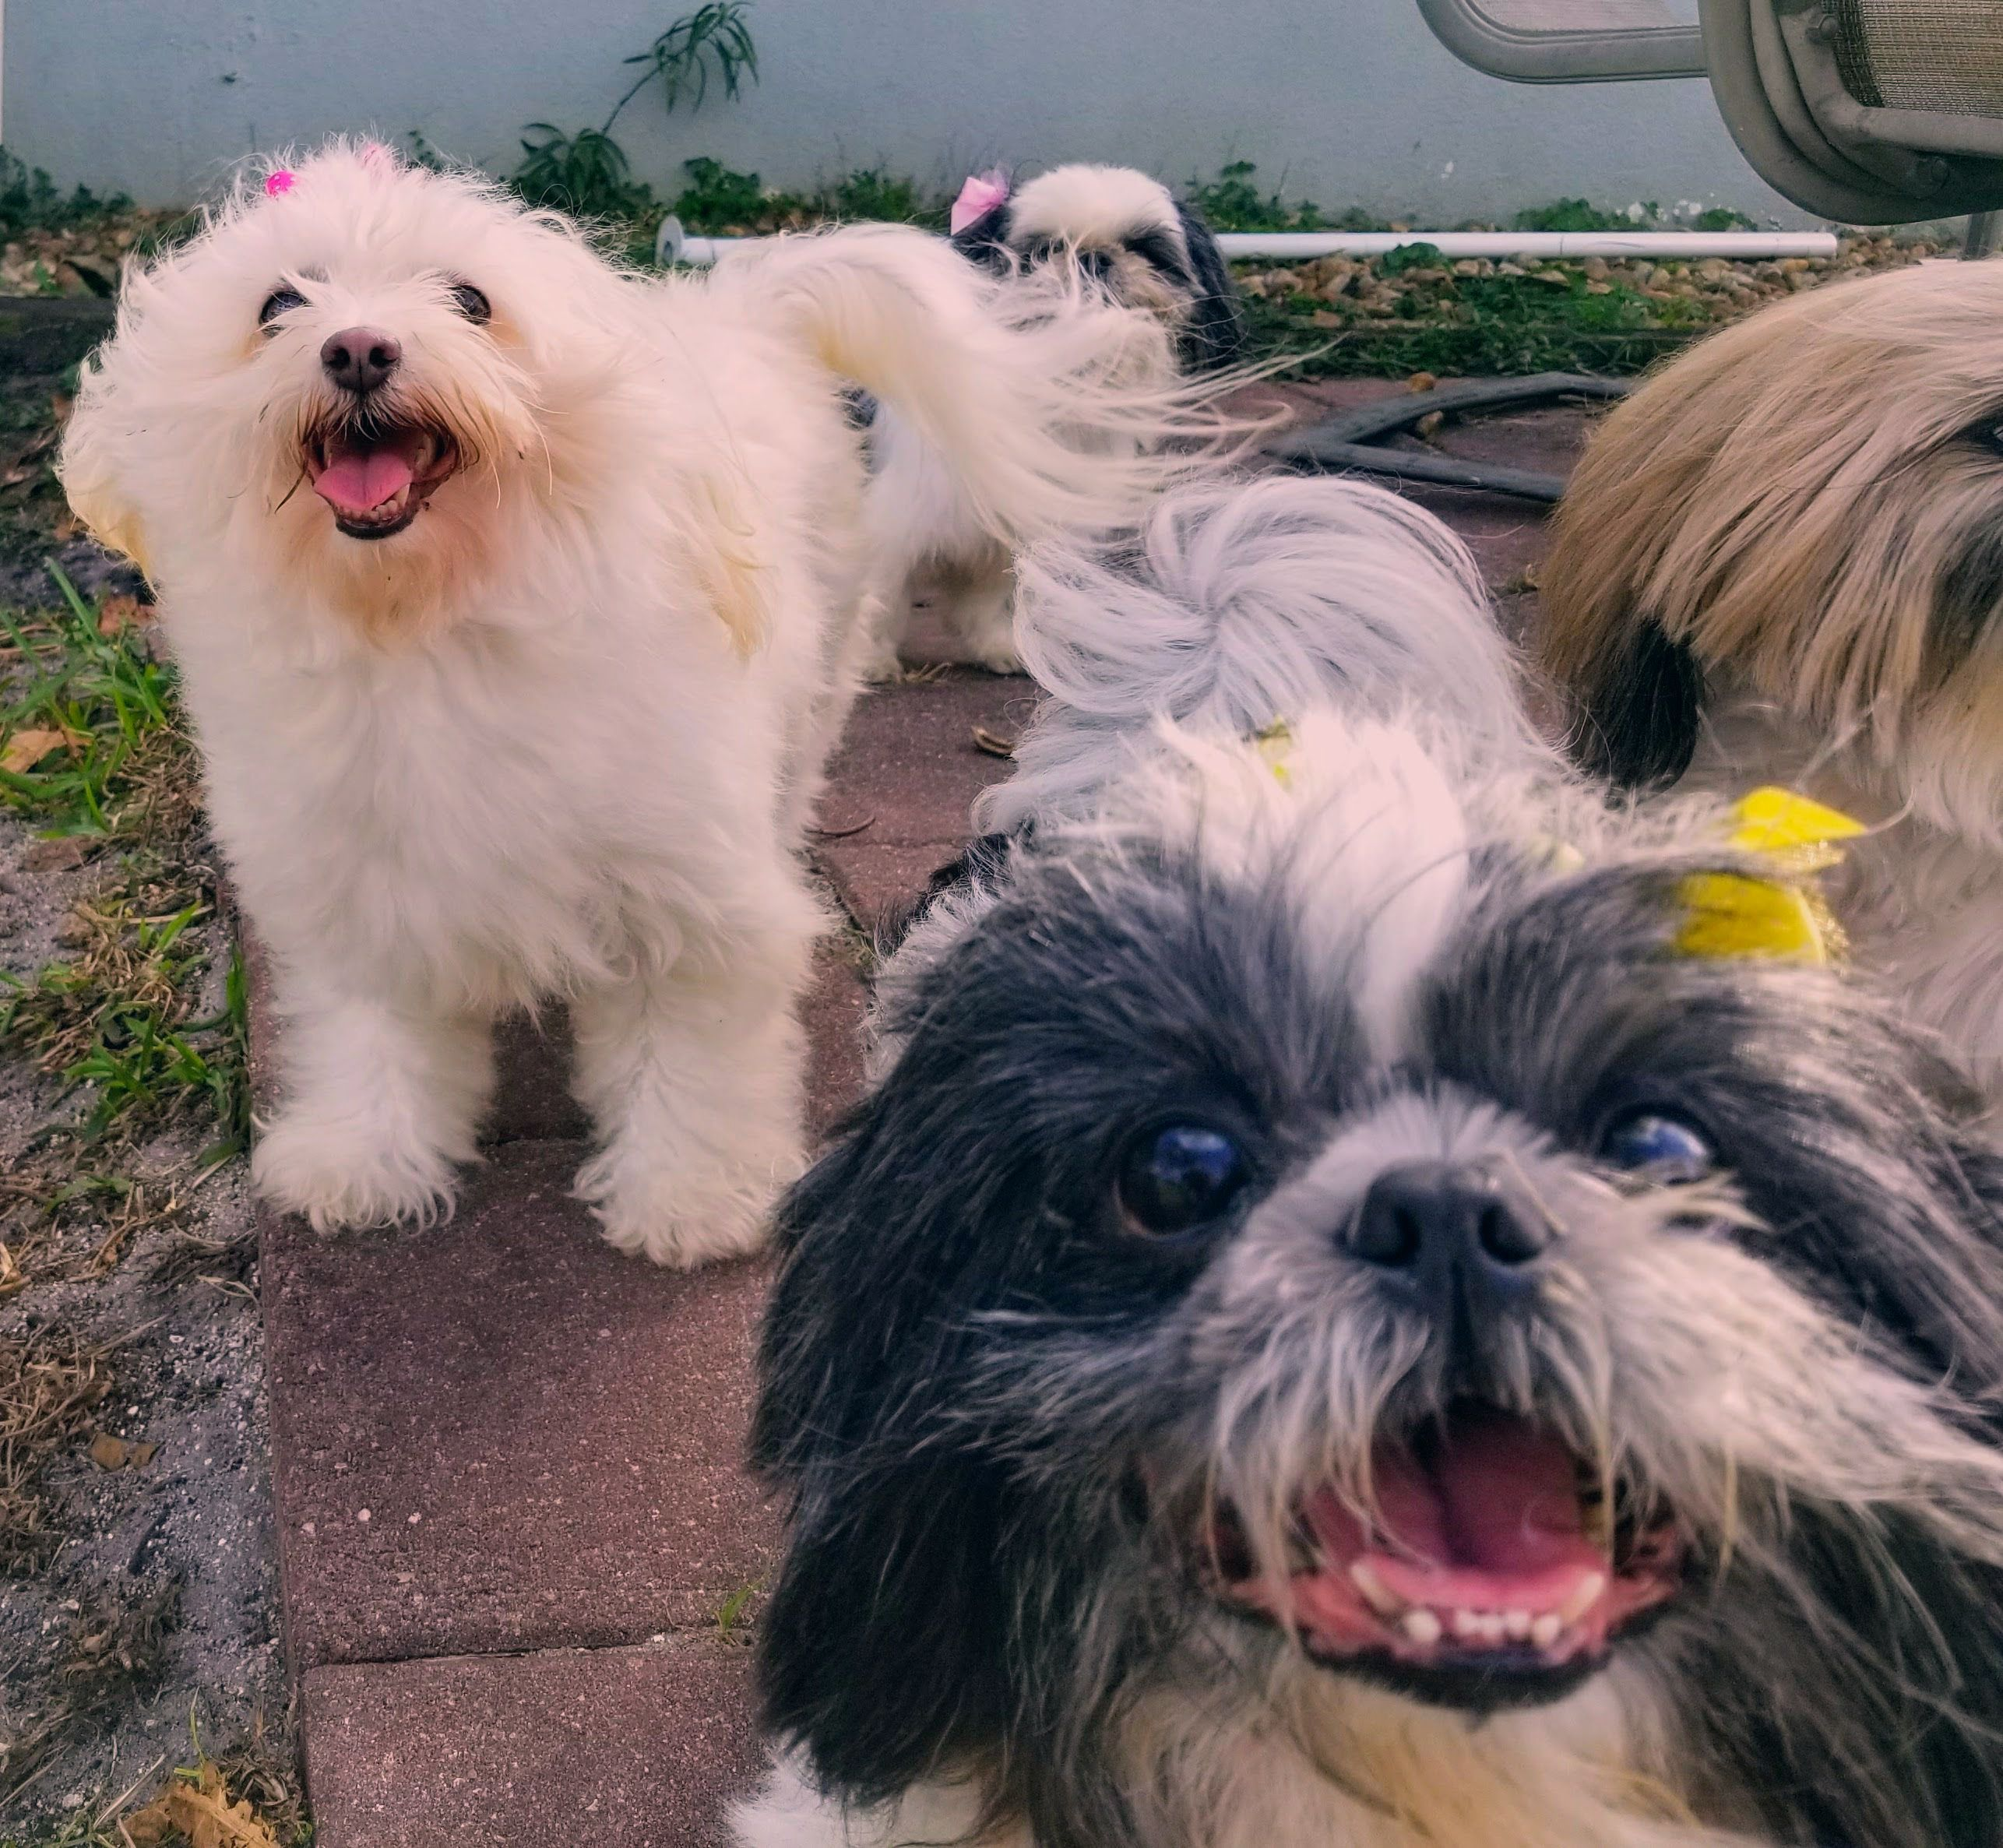 Find Shih Tzus For Sale On Oodle Classifieds All Shih Tzu Found Here Are From Akc Registered Parents Pets For Adoption At In 2020 Shih Tzu Puppies Shih Tzu For Sale